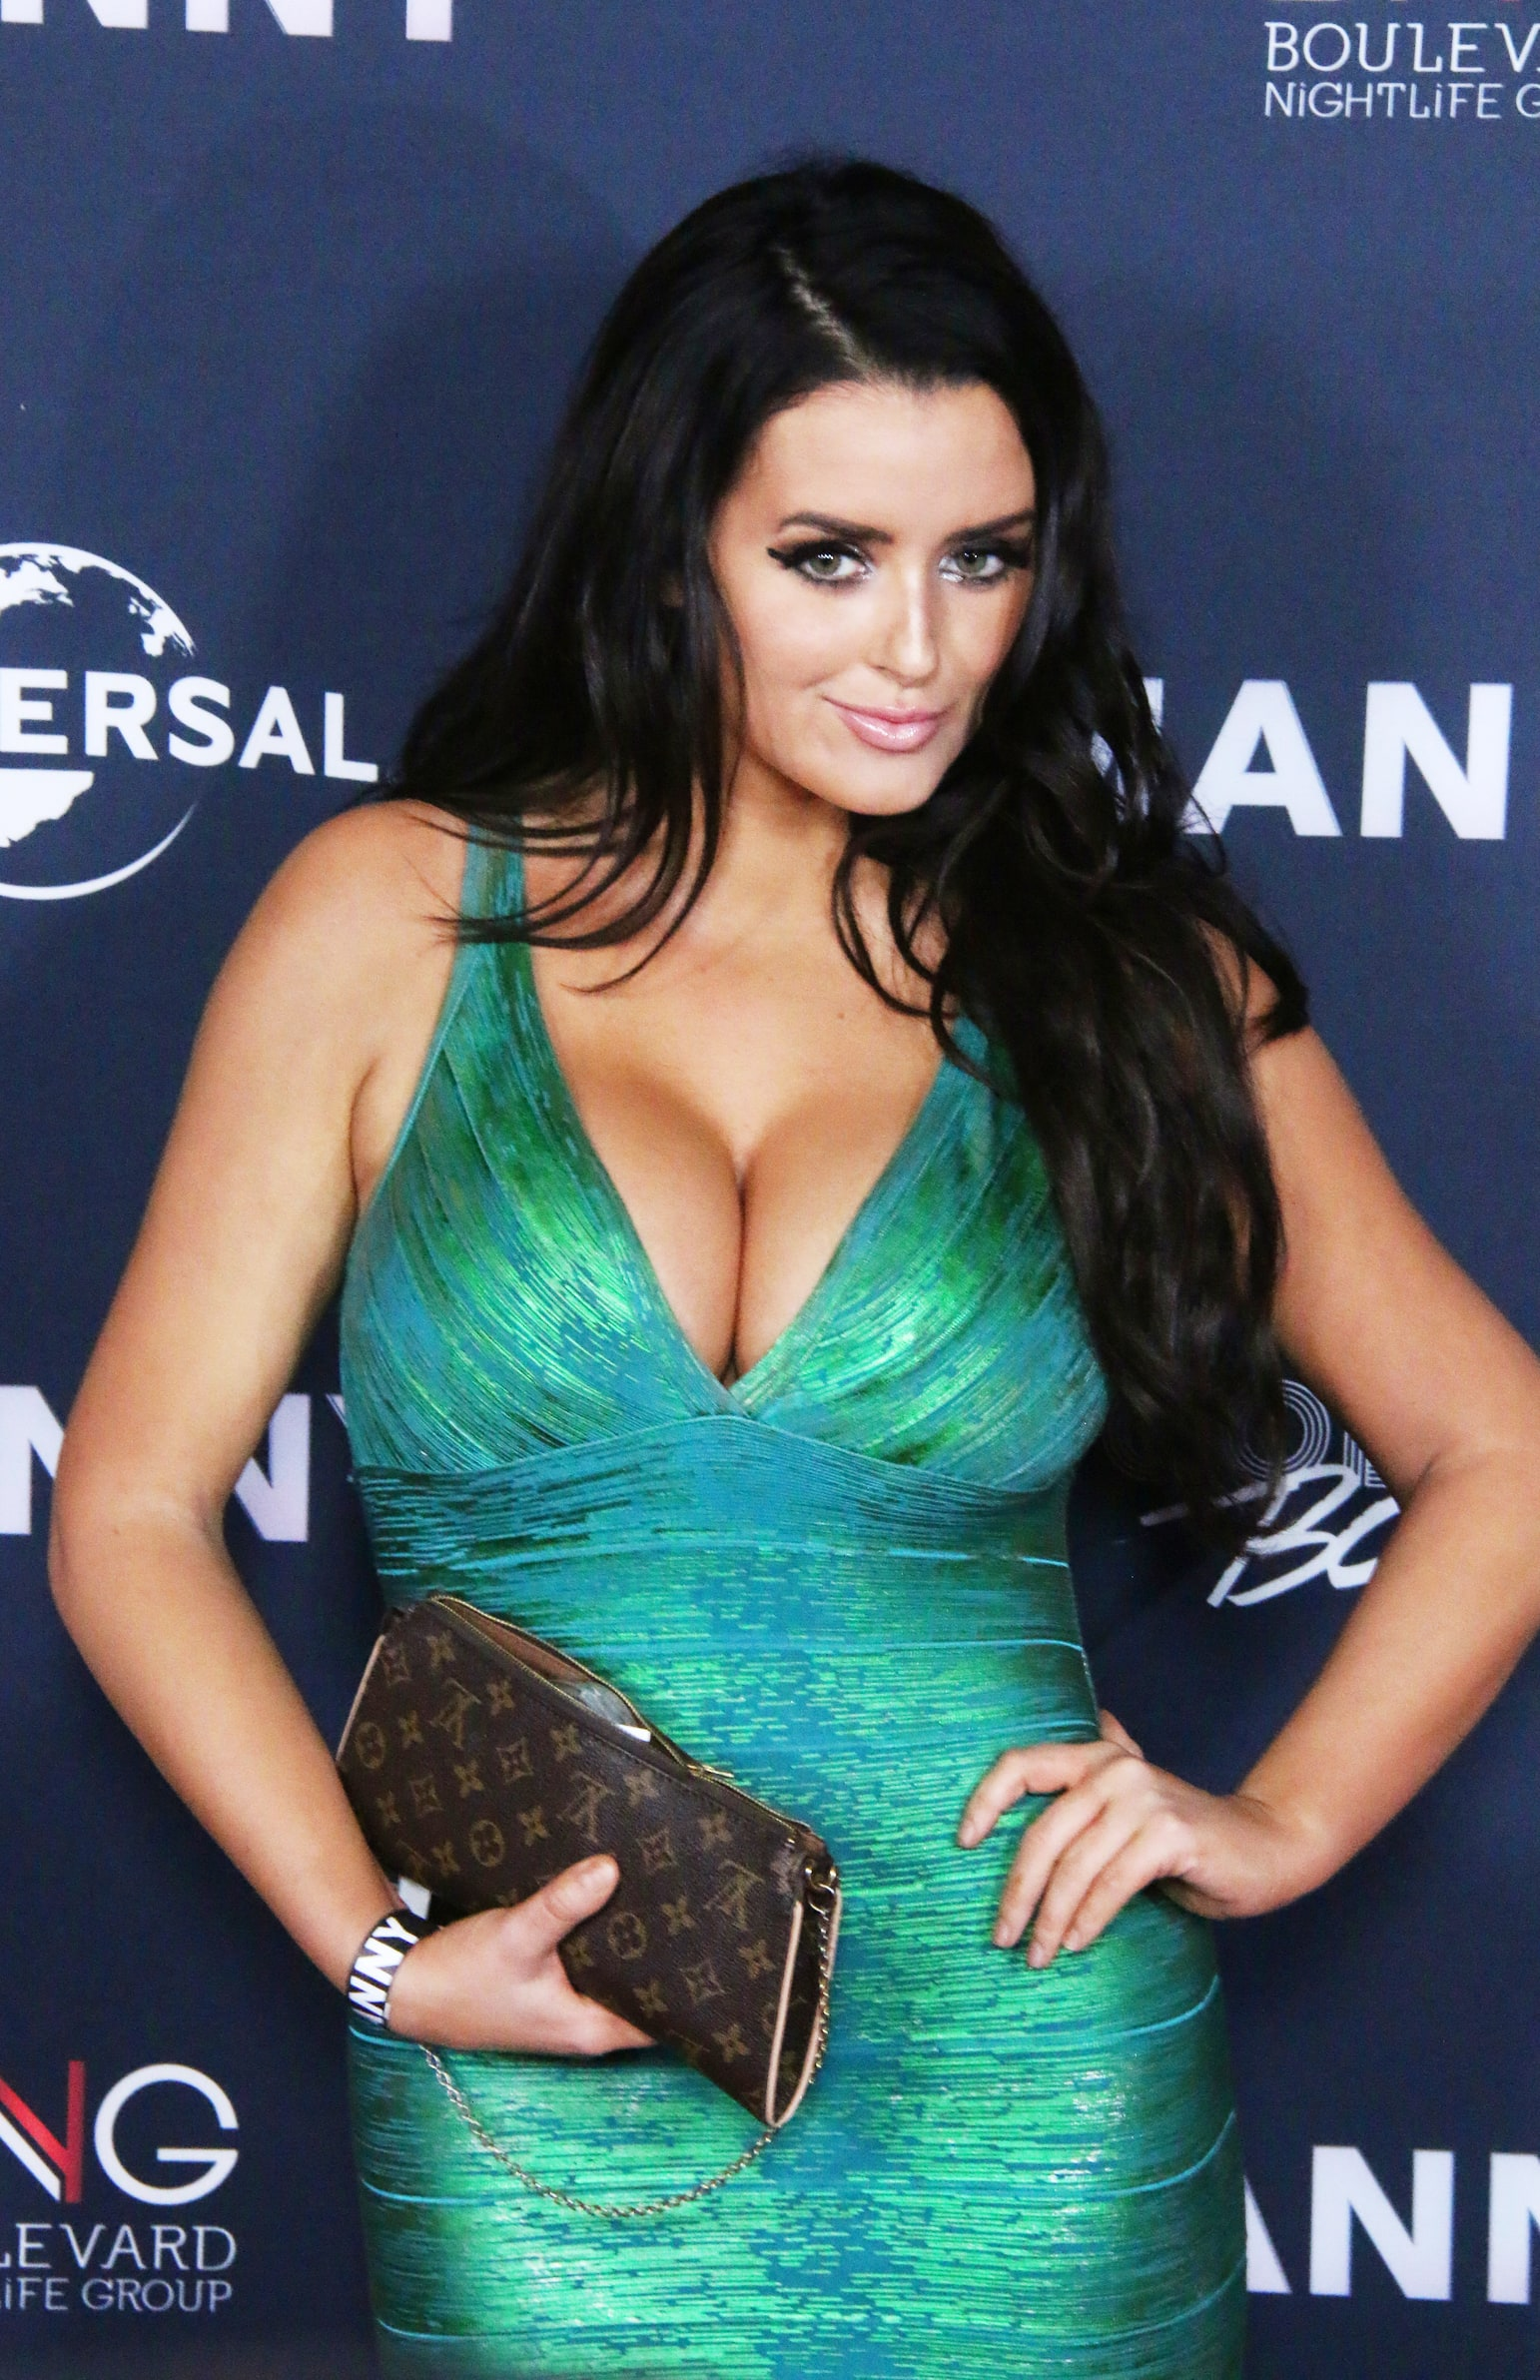 Just love abigail ratchford